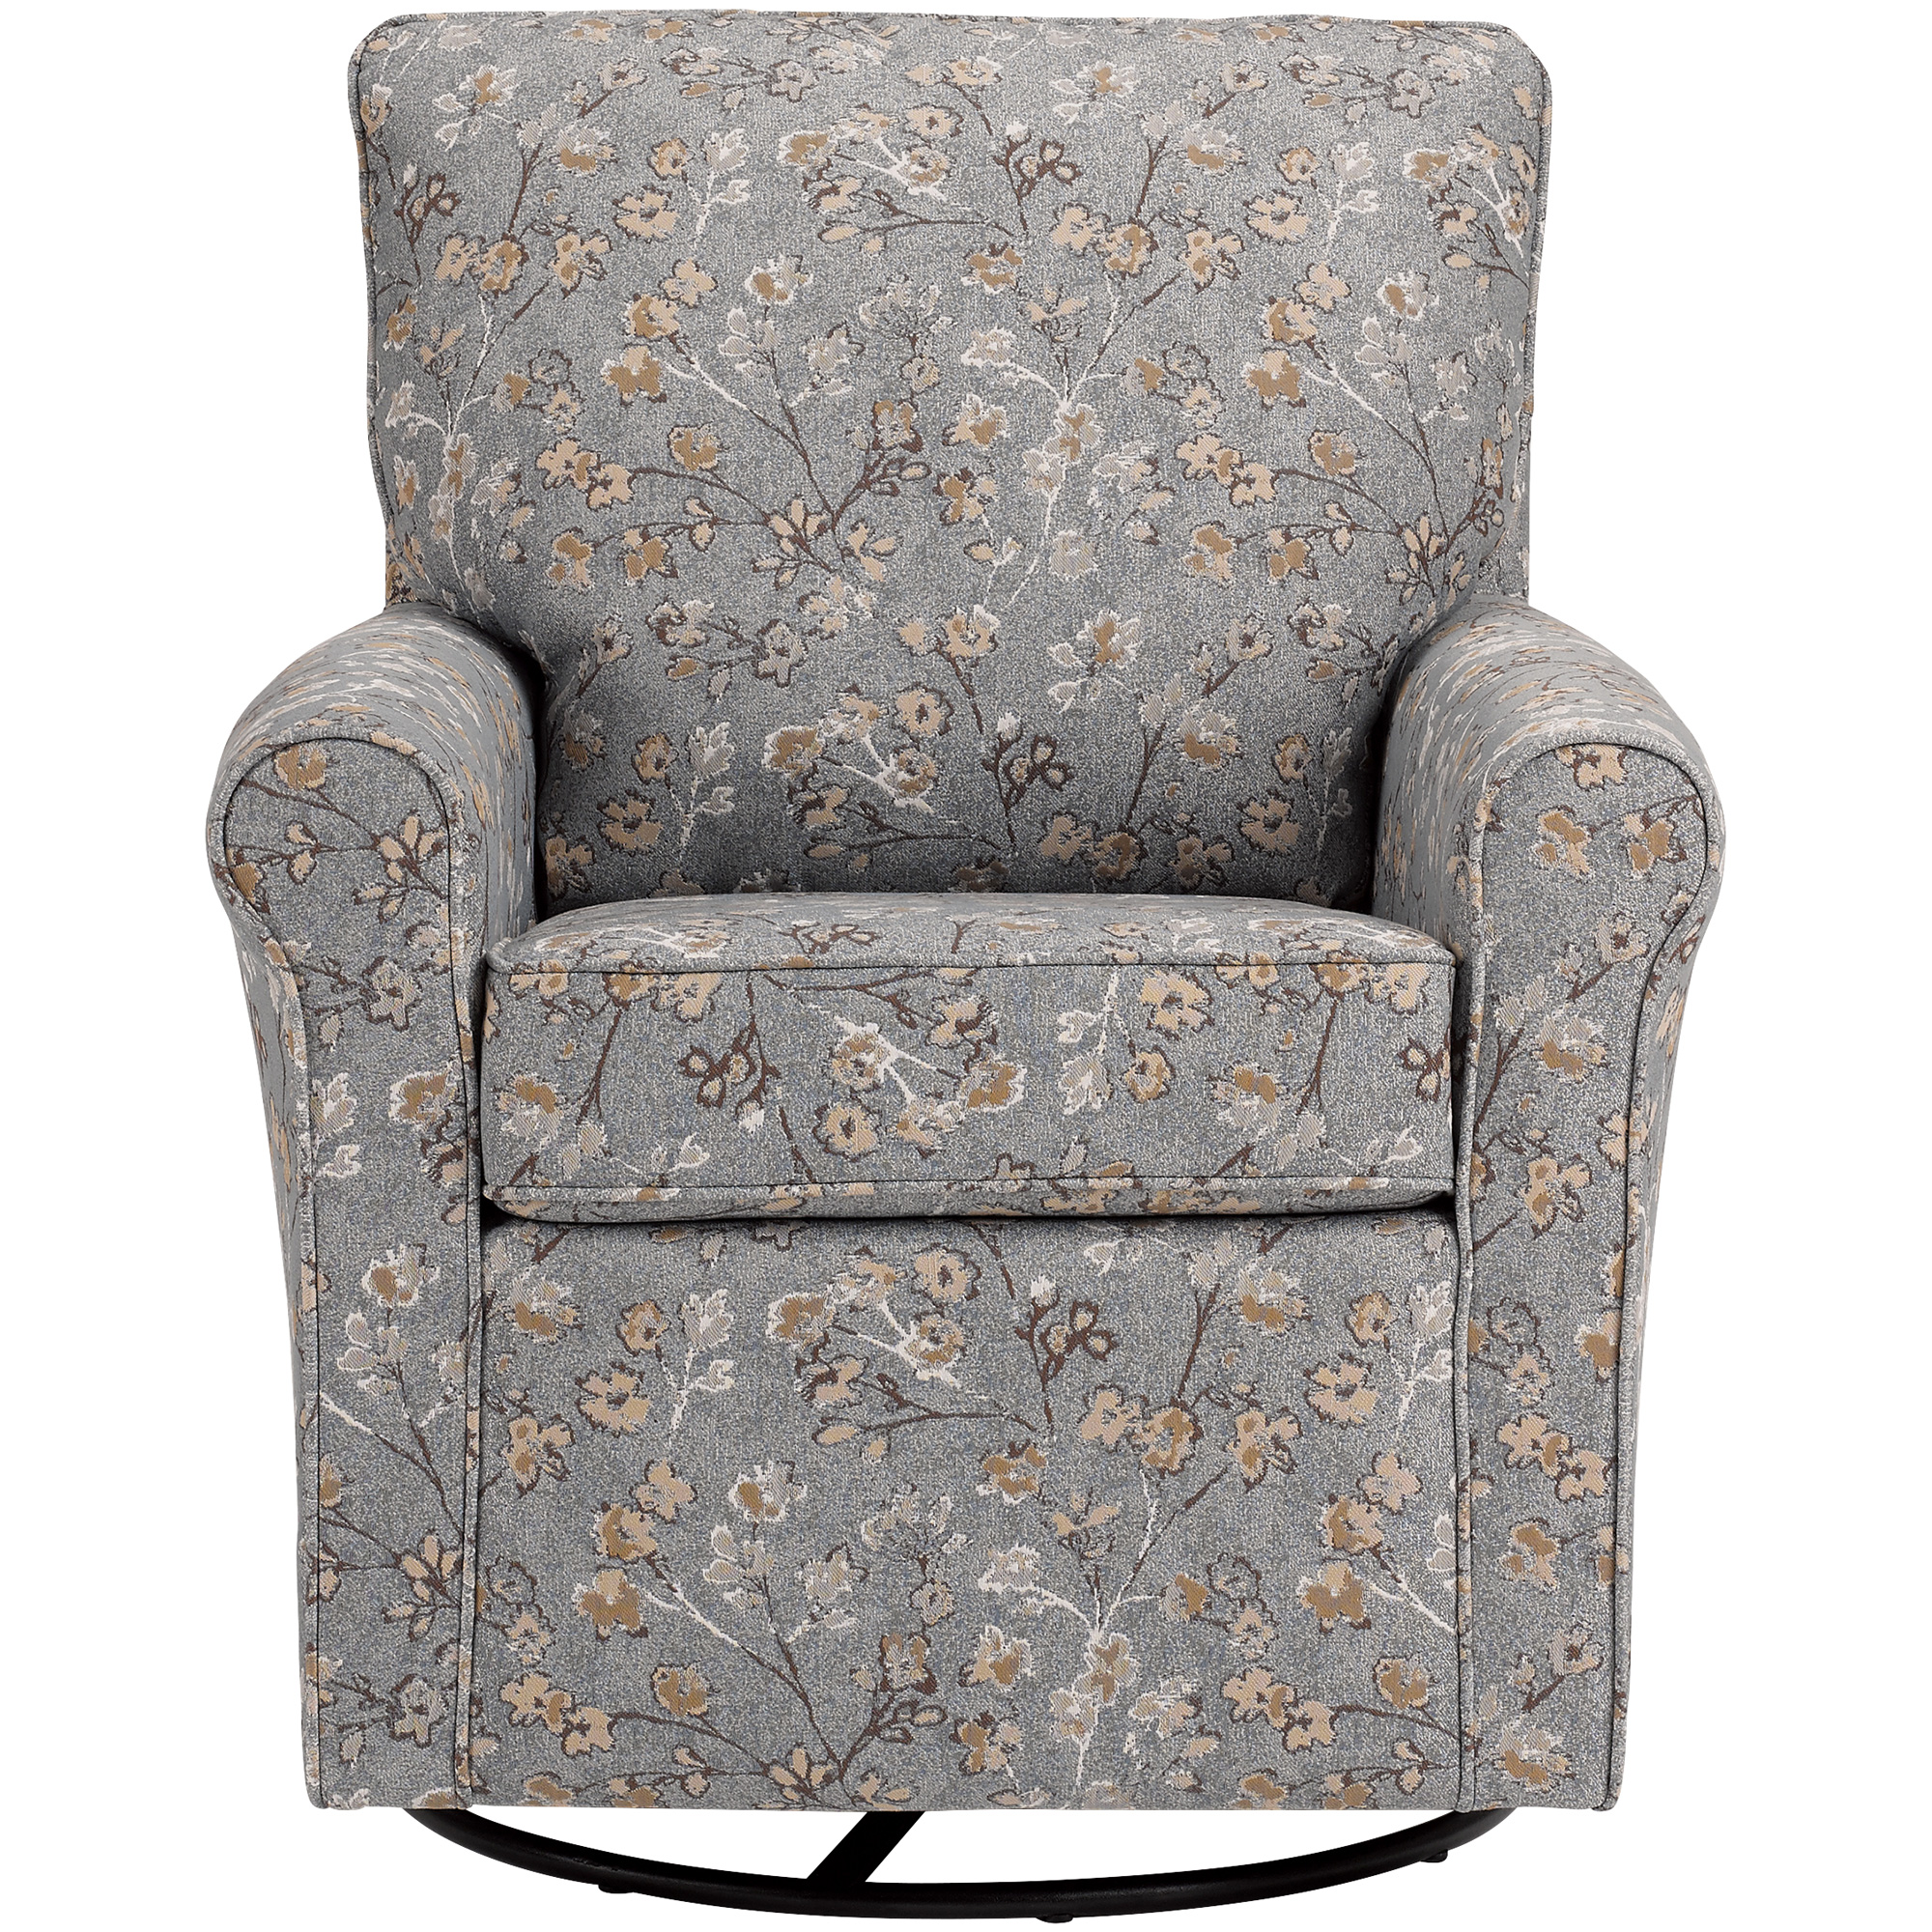 Best Home Furnishings | Kacey Lake Swivel Glider Accent Chair